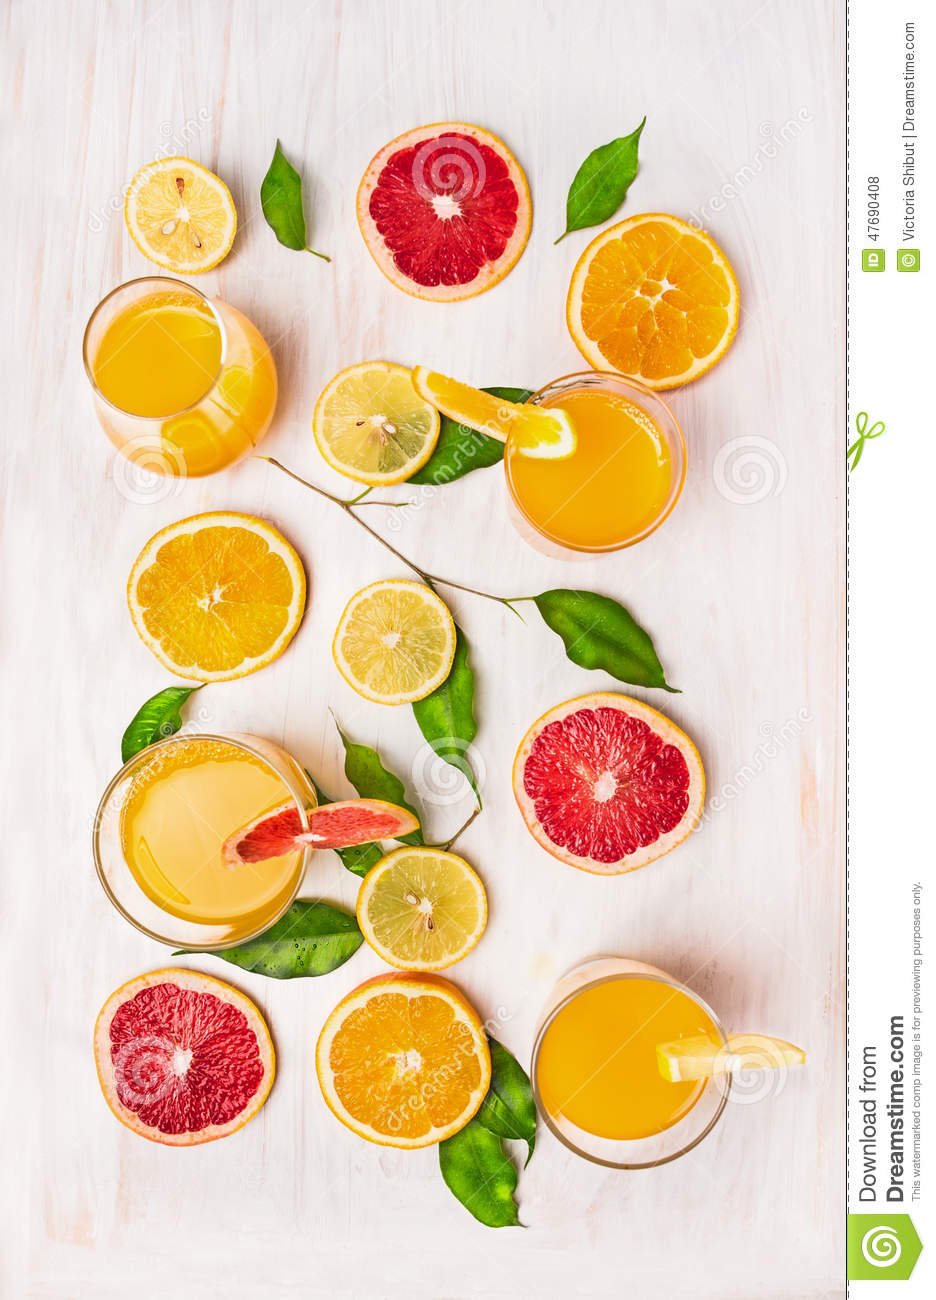 Composing of Citrus juices and a slice of orange,grapefruit and lemon with green leaves